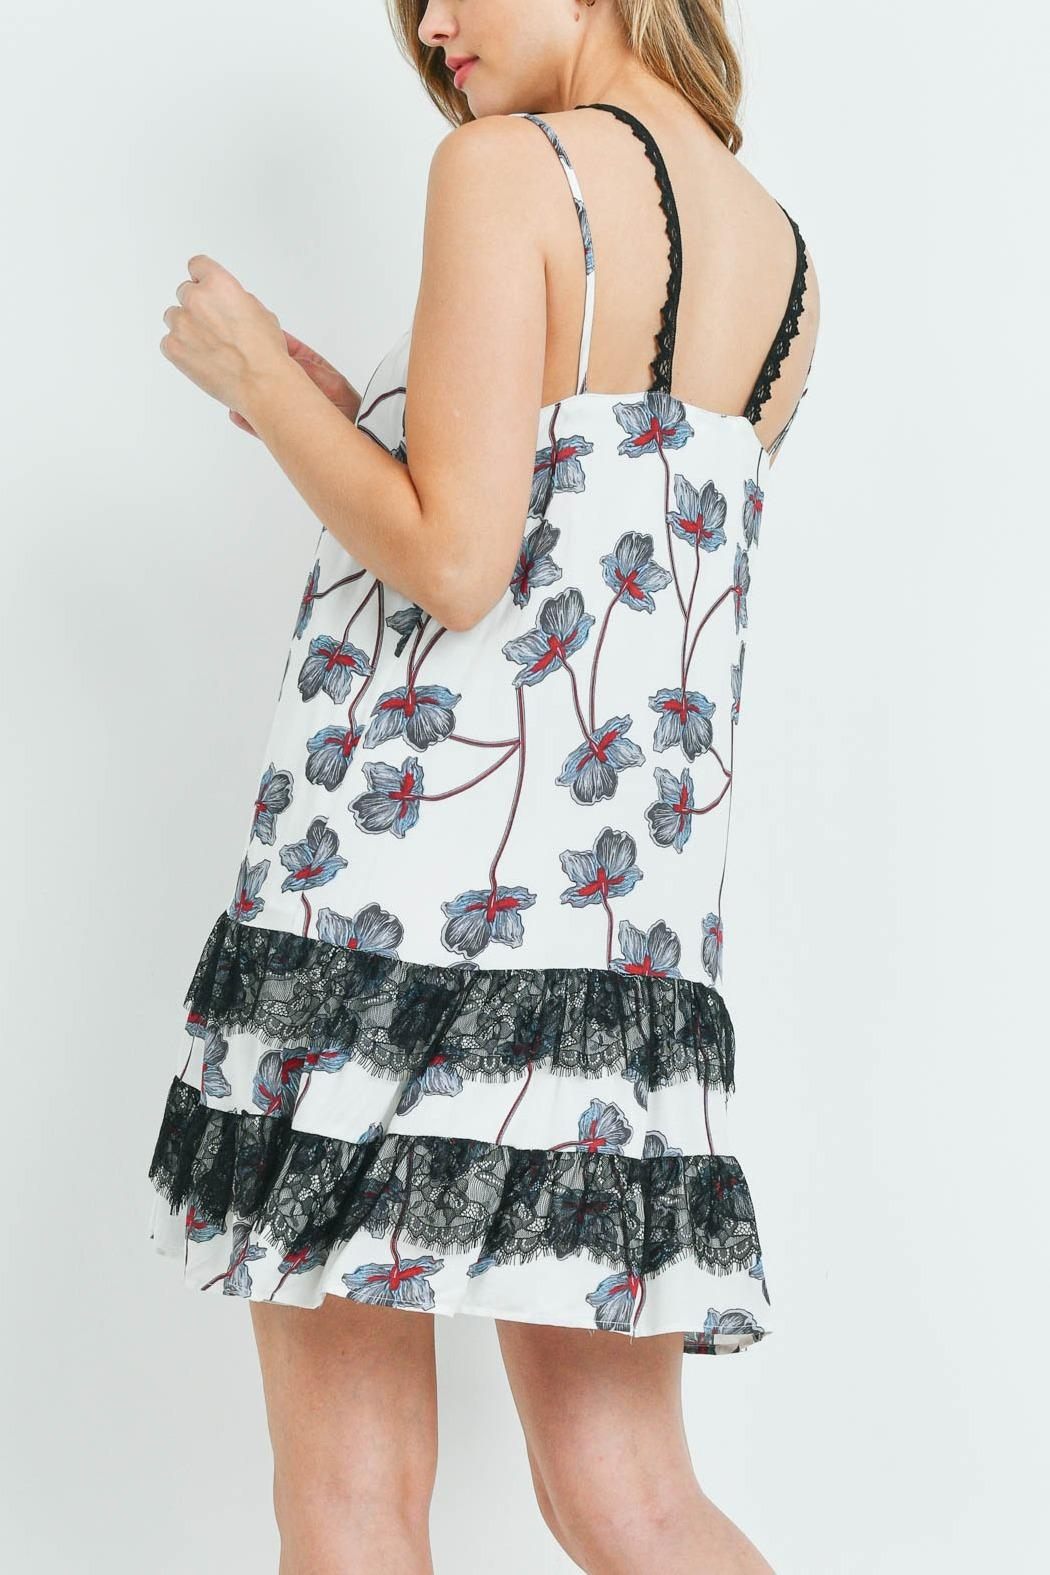 Riah Fashion White-With-Flower Print Dress - Front Full Image